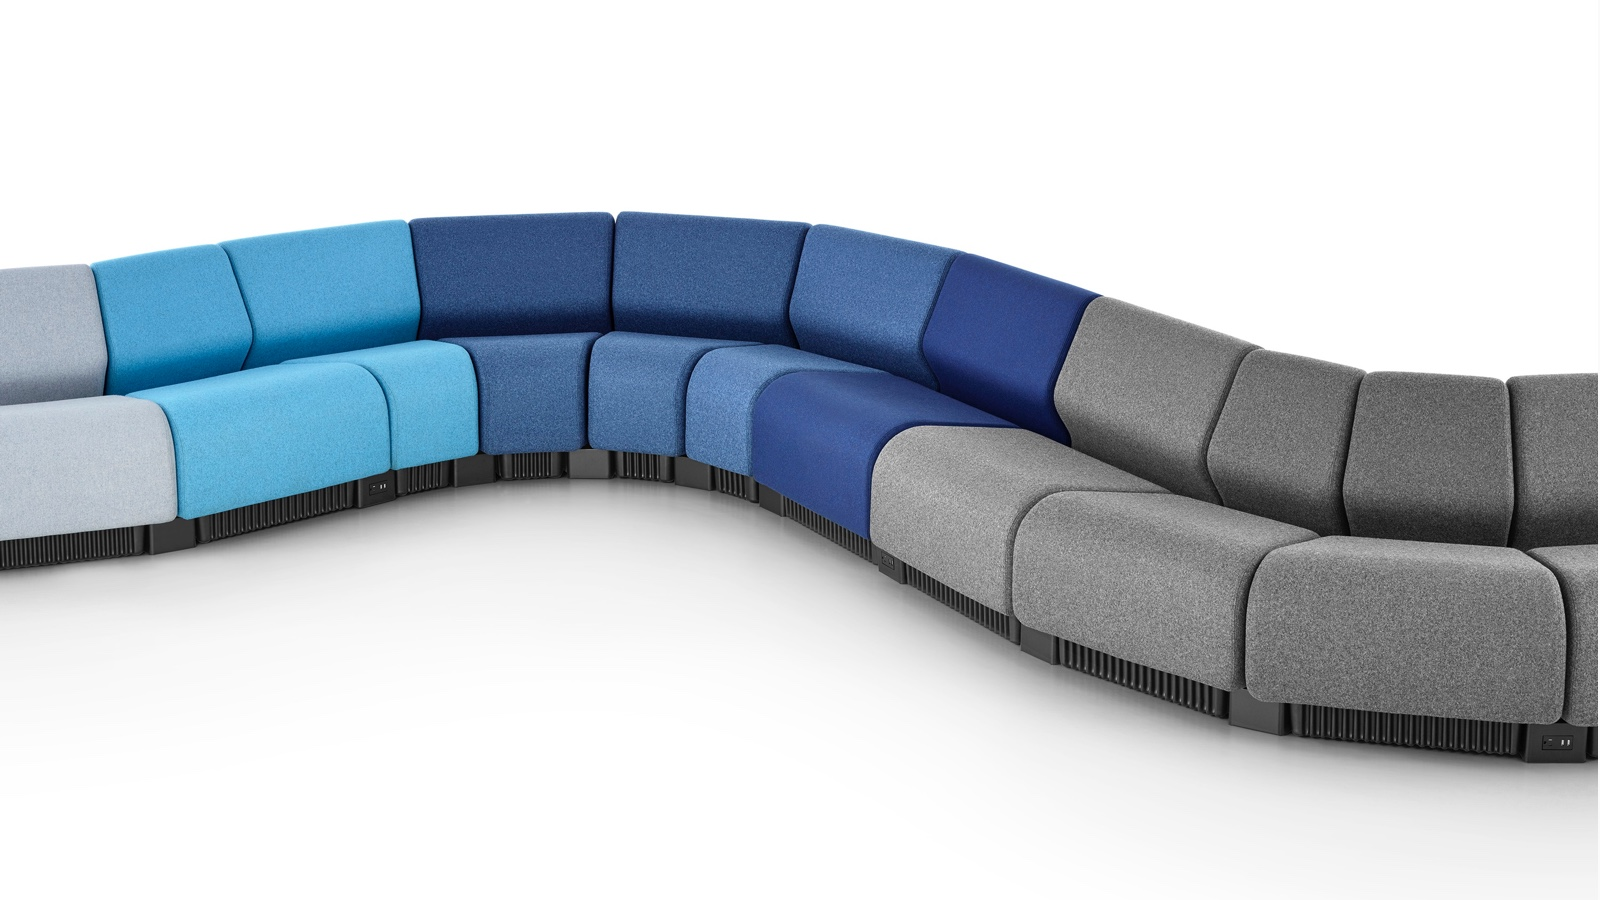 chadwick sofa cloth and leather sofas modular seating lounge herman miller a serpentine configuration formed with modules in shades of gray blue